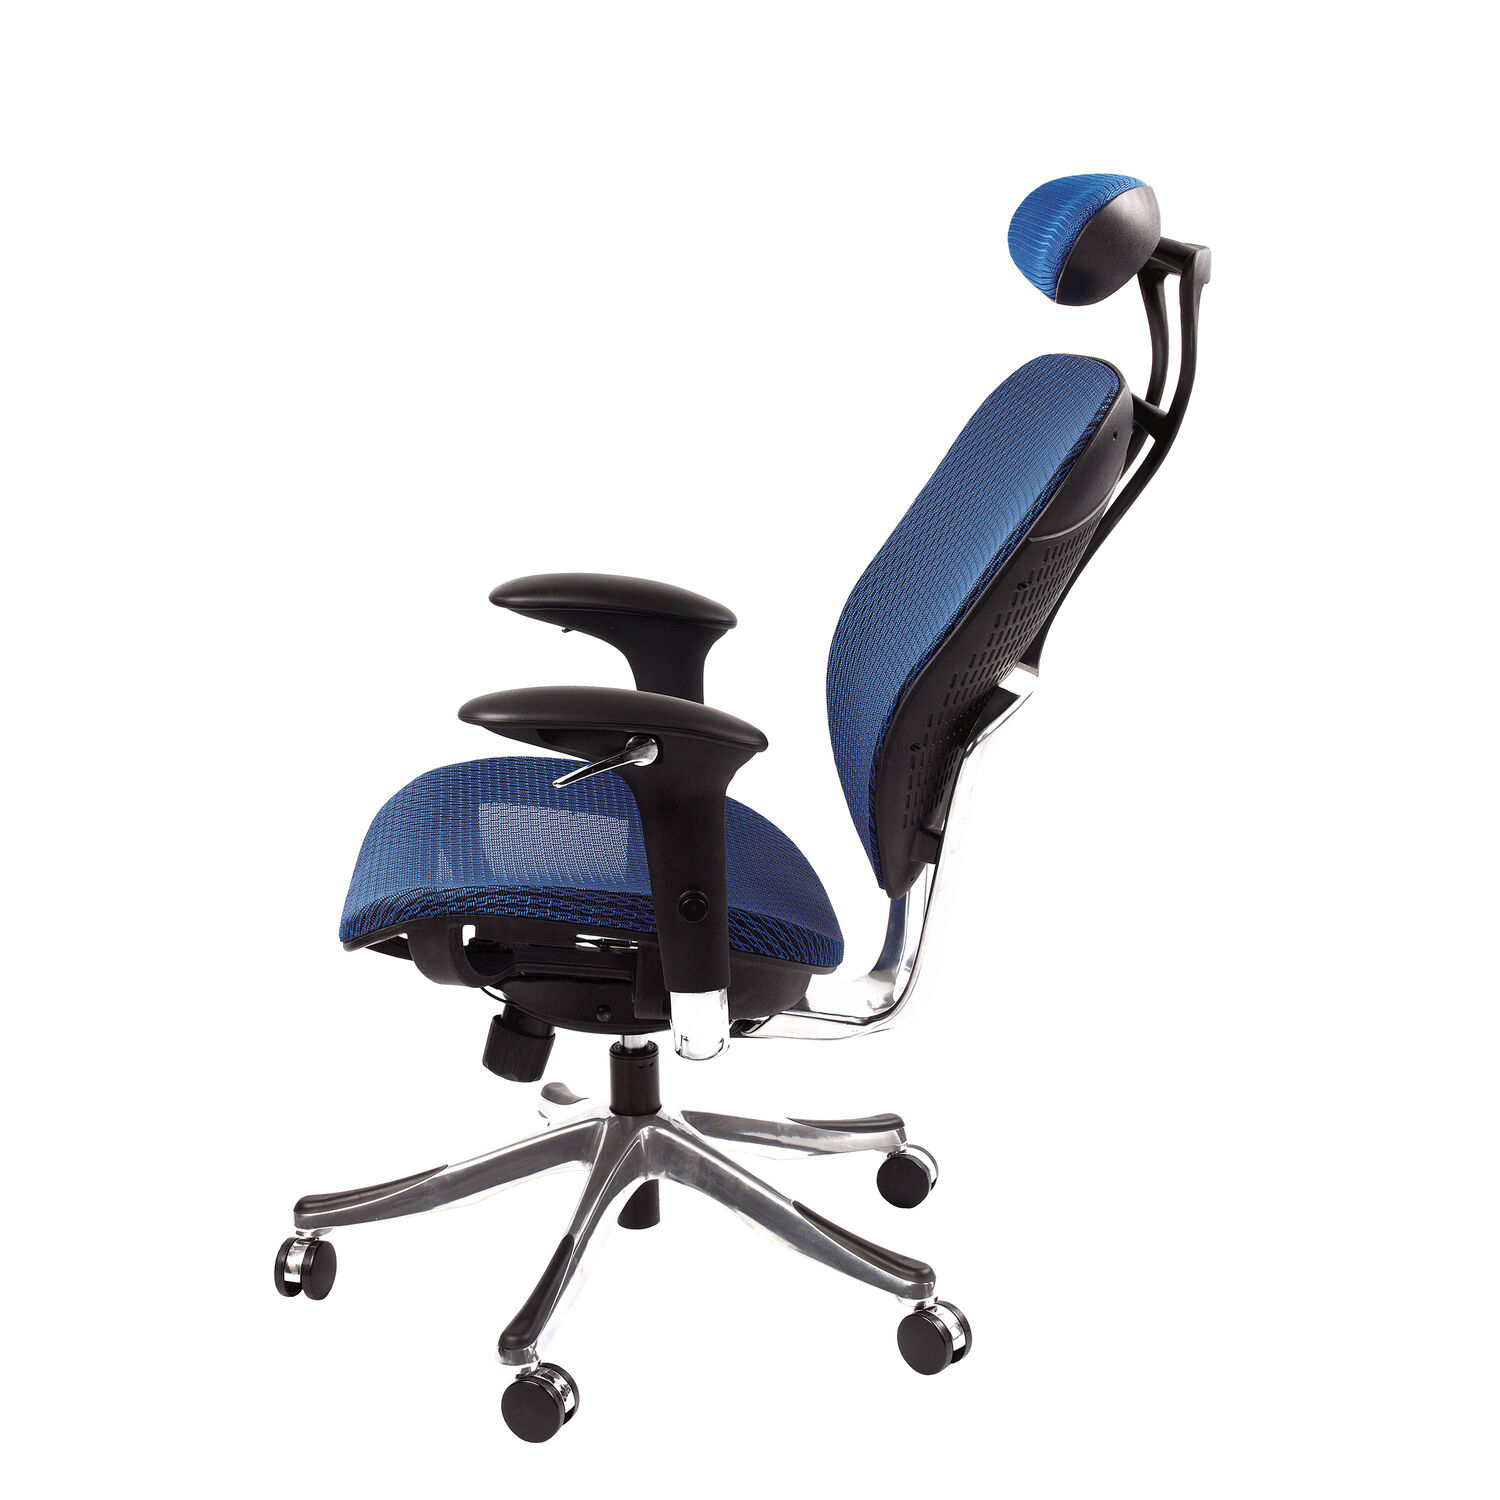 Samsonite Zurich Mesh fice Chair in the color Blue